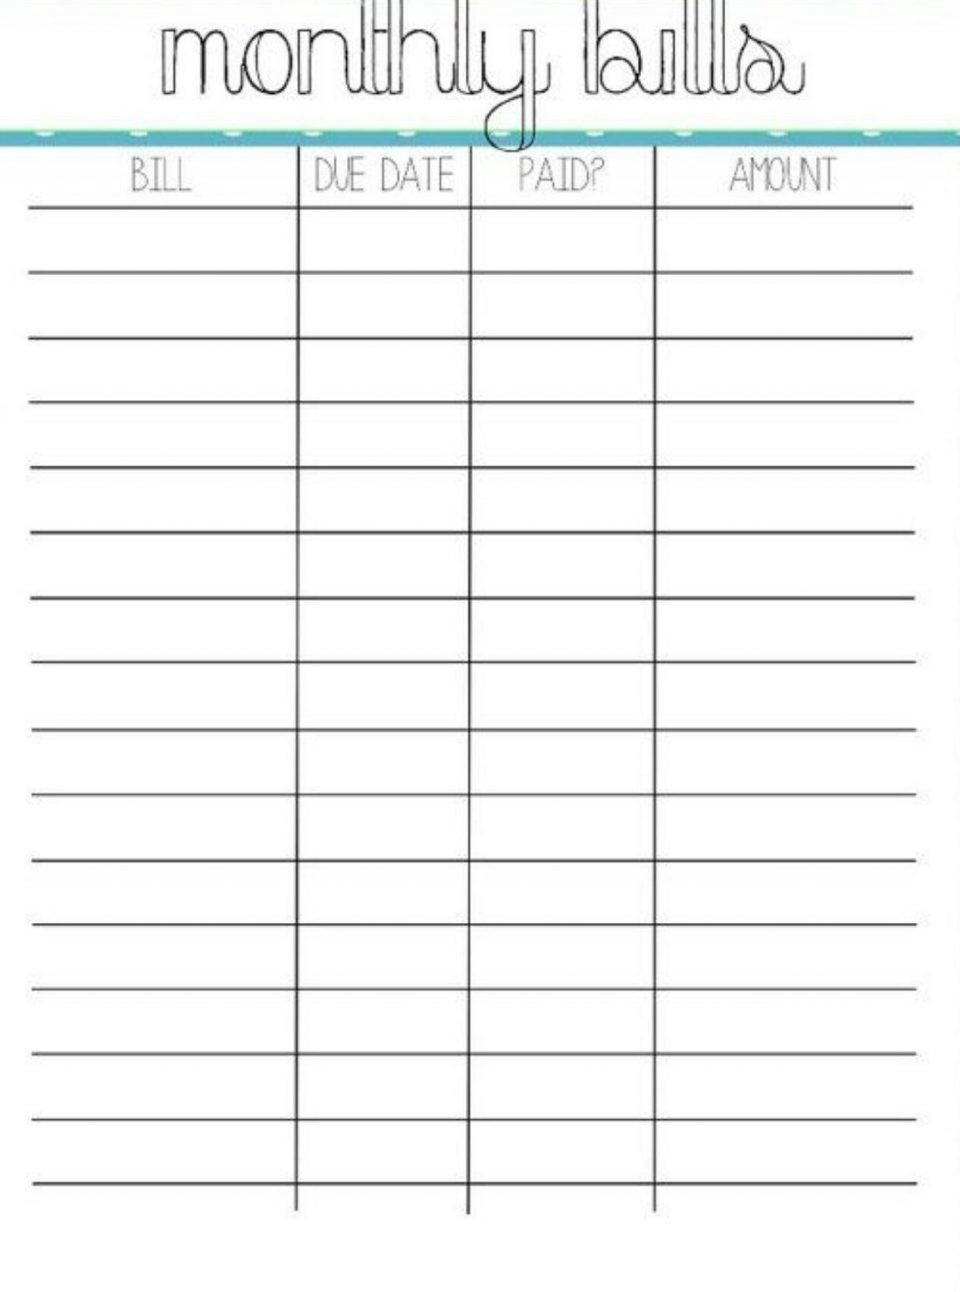 Monthly Bill Sample With Free Printable Organizer Template-Printable Monthly Bill Calendar Free